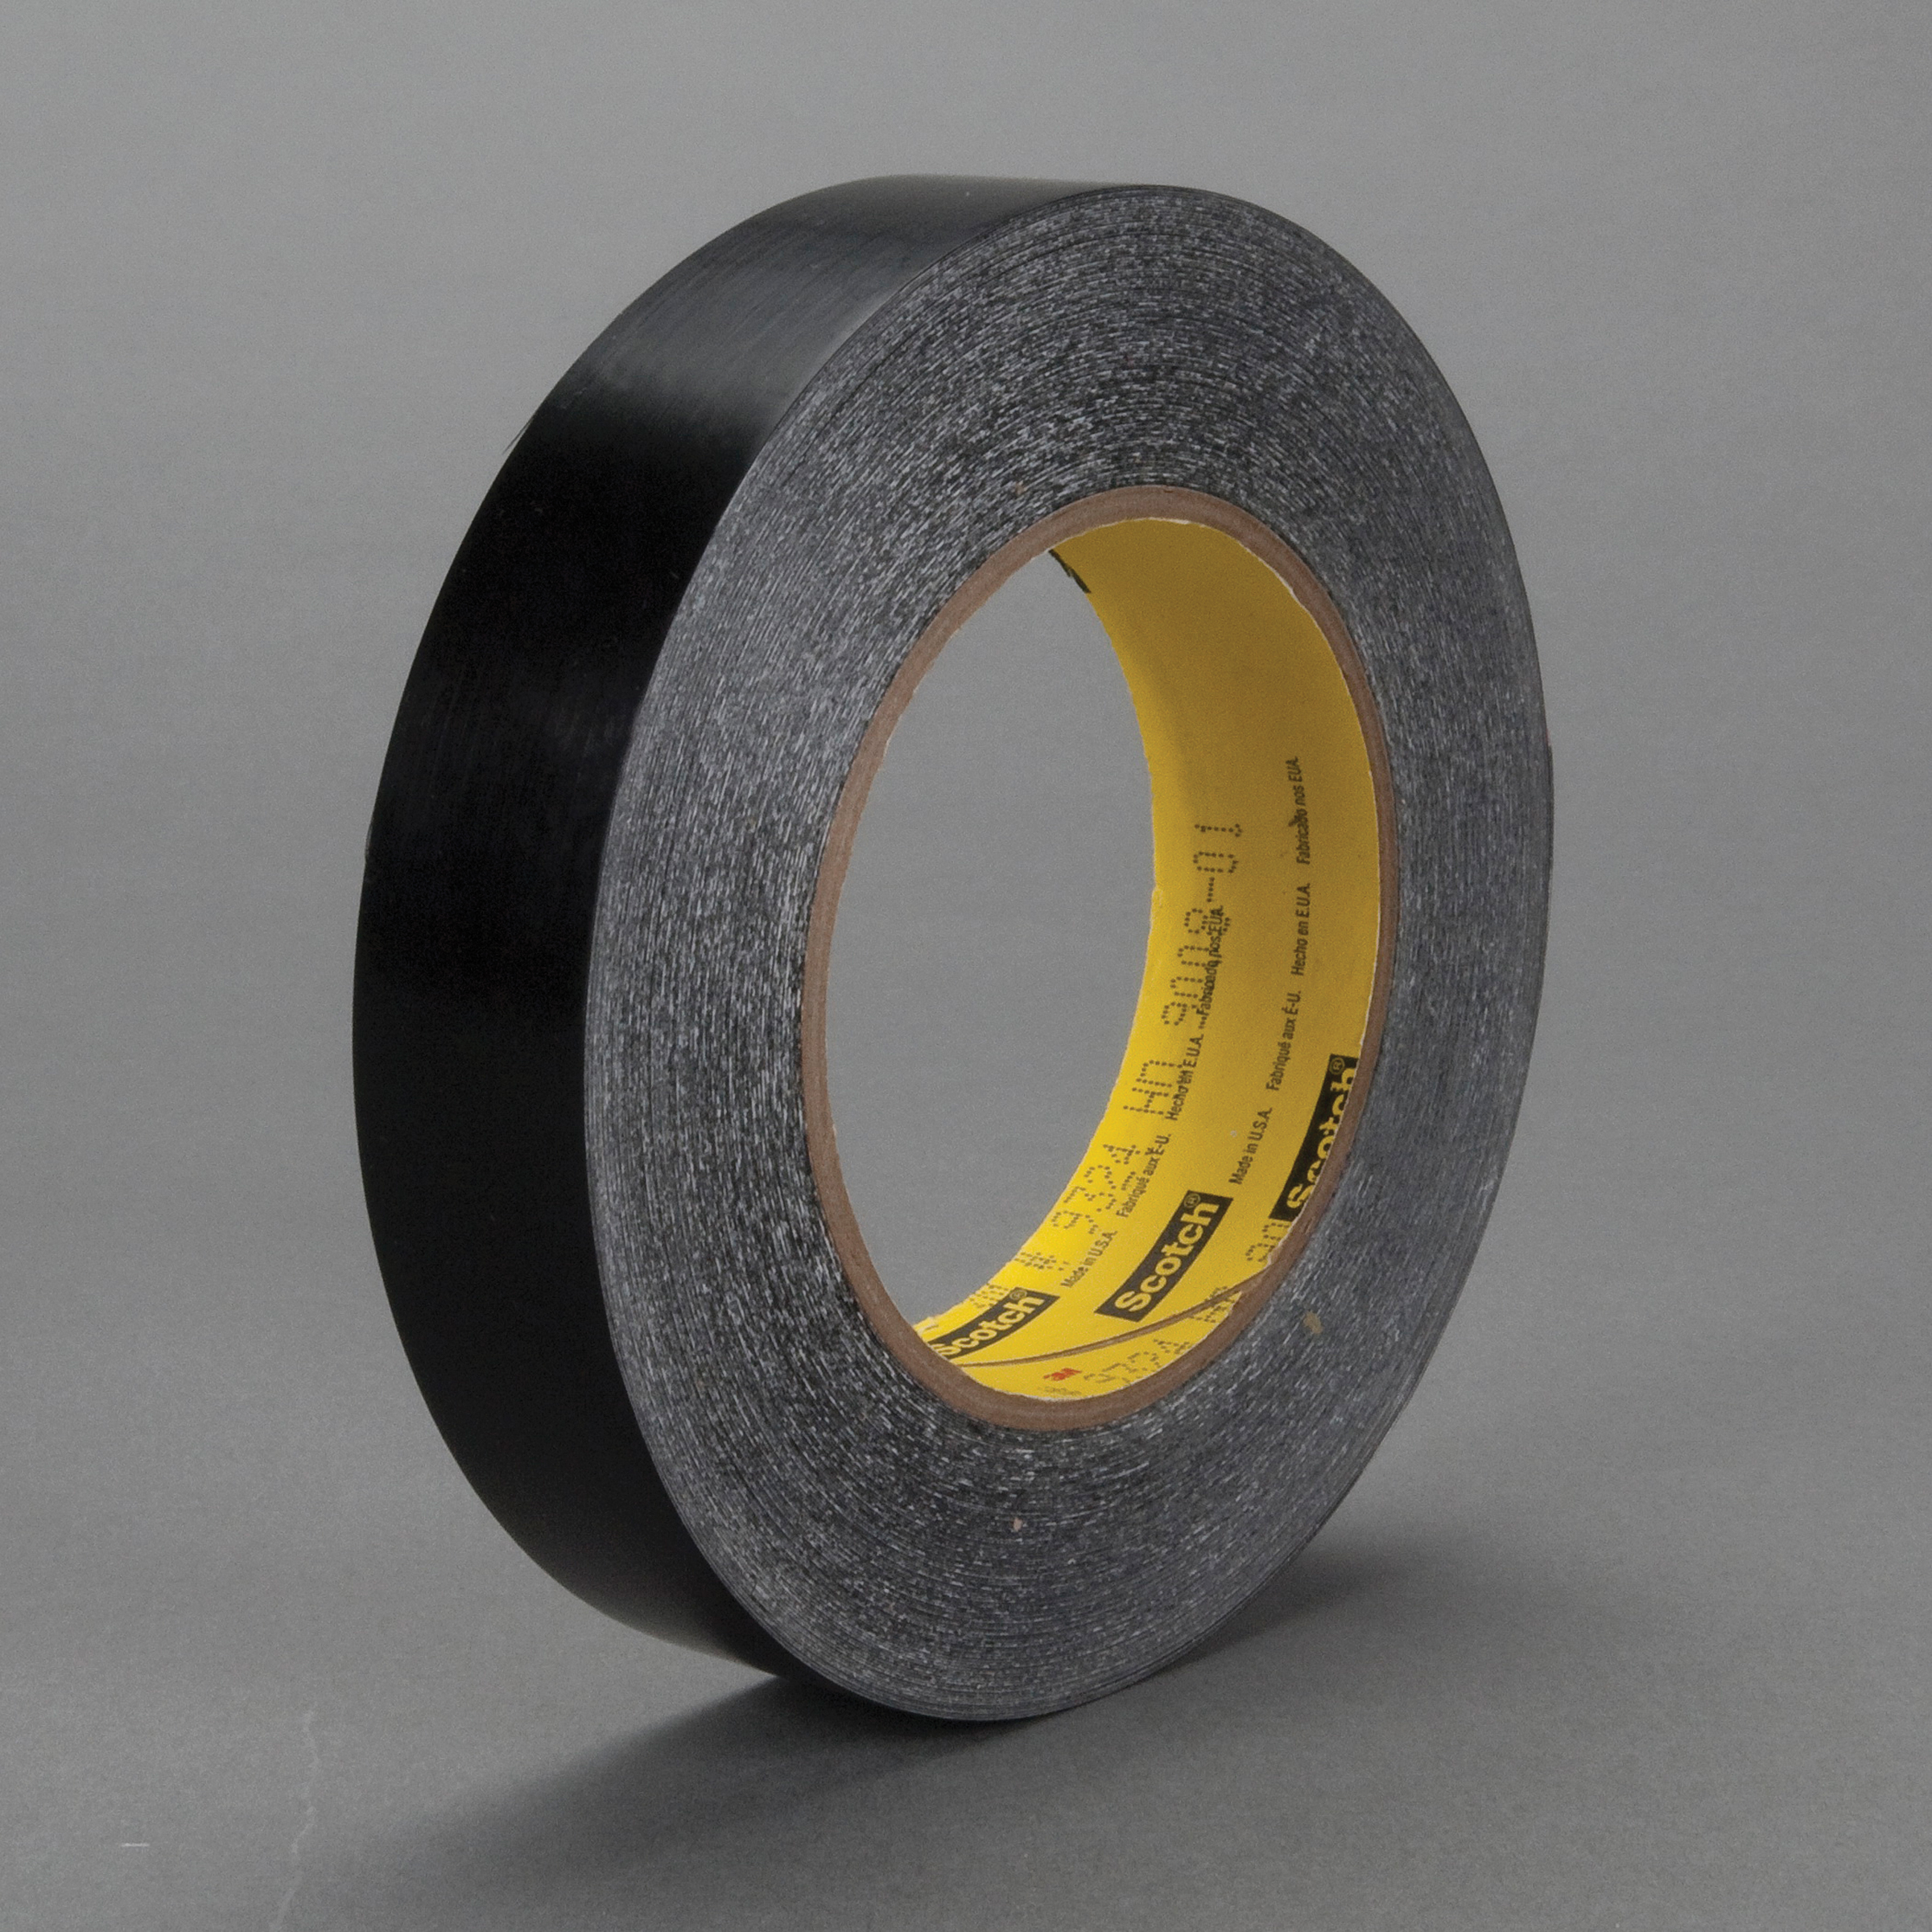 3M™ 021200-38826 High Tack Squeak Reduction Tape, 36 yd L x 1 in W, 6.5 mil THK, Acrylic Adhesive, UHMWP Film Backing, Black